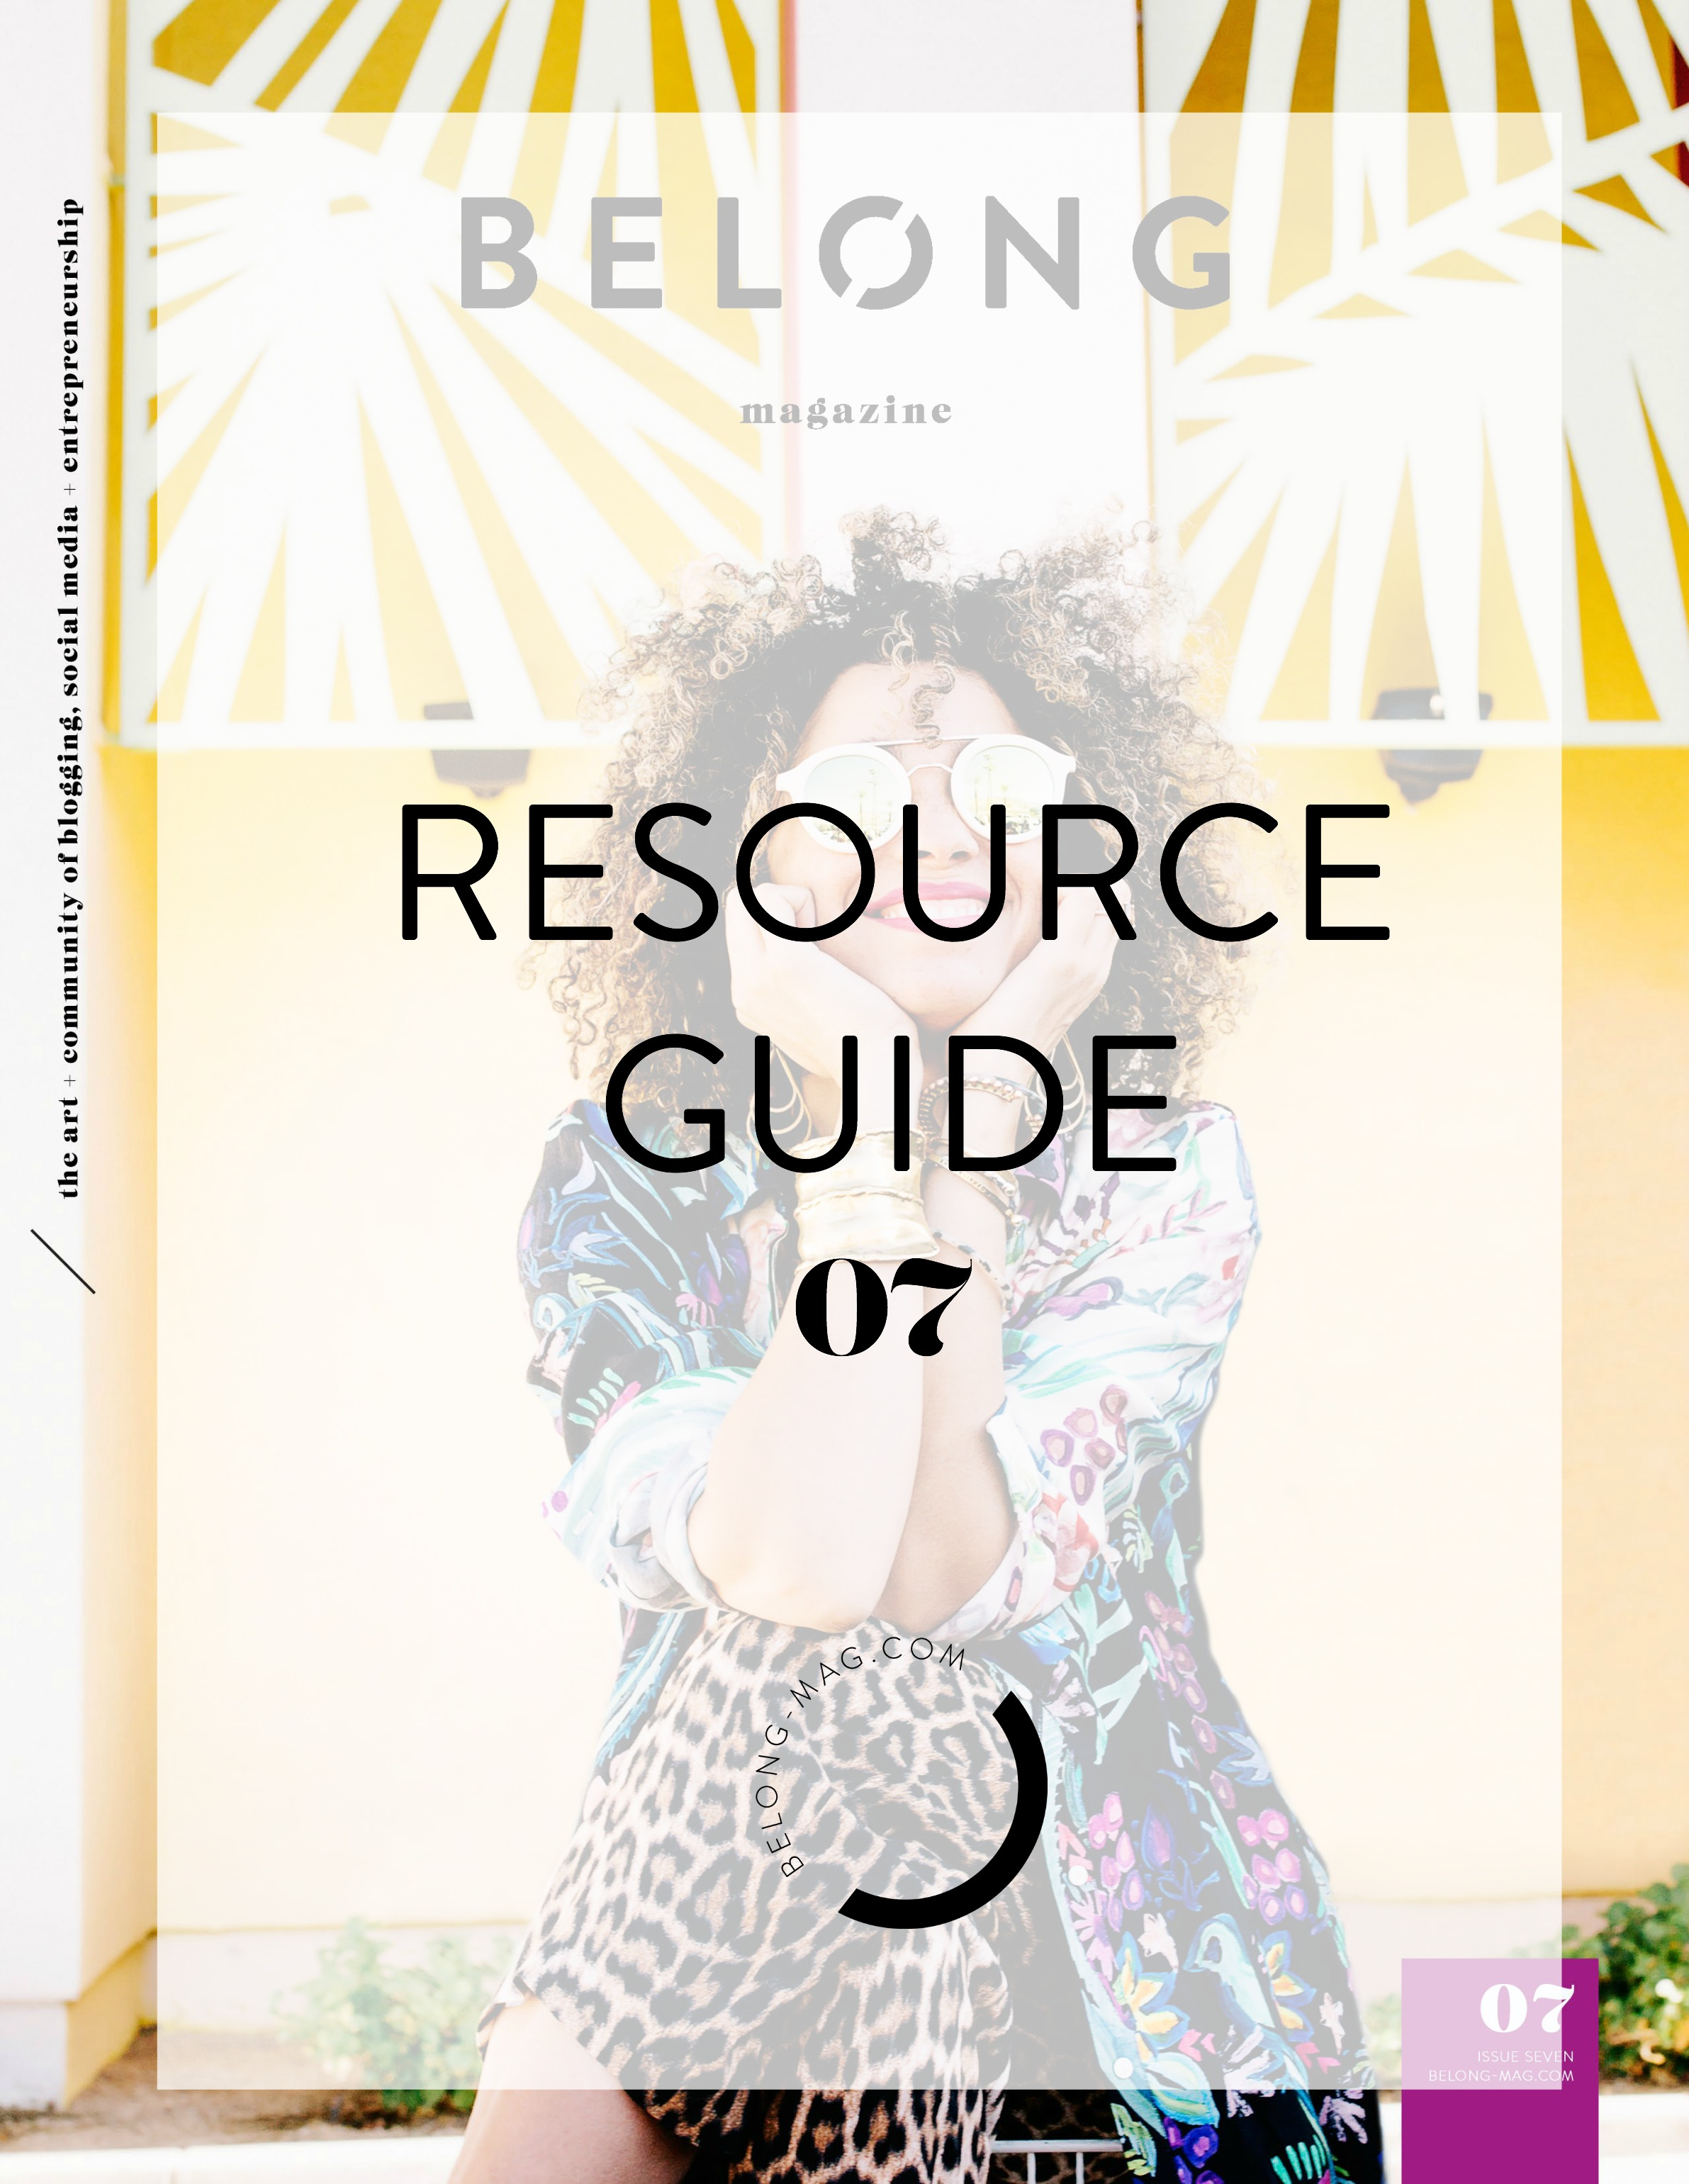 Belong Magazine Resource Guide for female entrepreneurs, bloggers, social media mavens and more--help with design, websites, coaching, webinars, podcasts, tools, communities, and more.